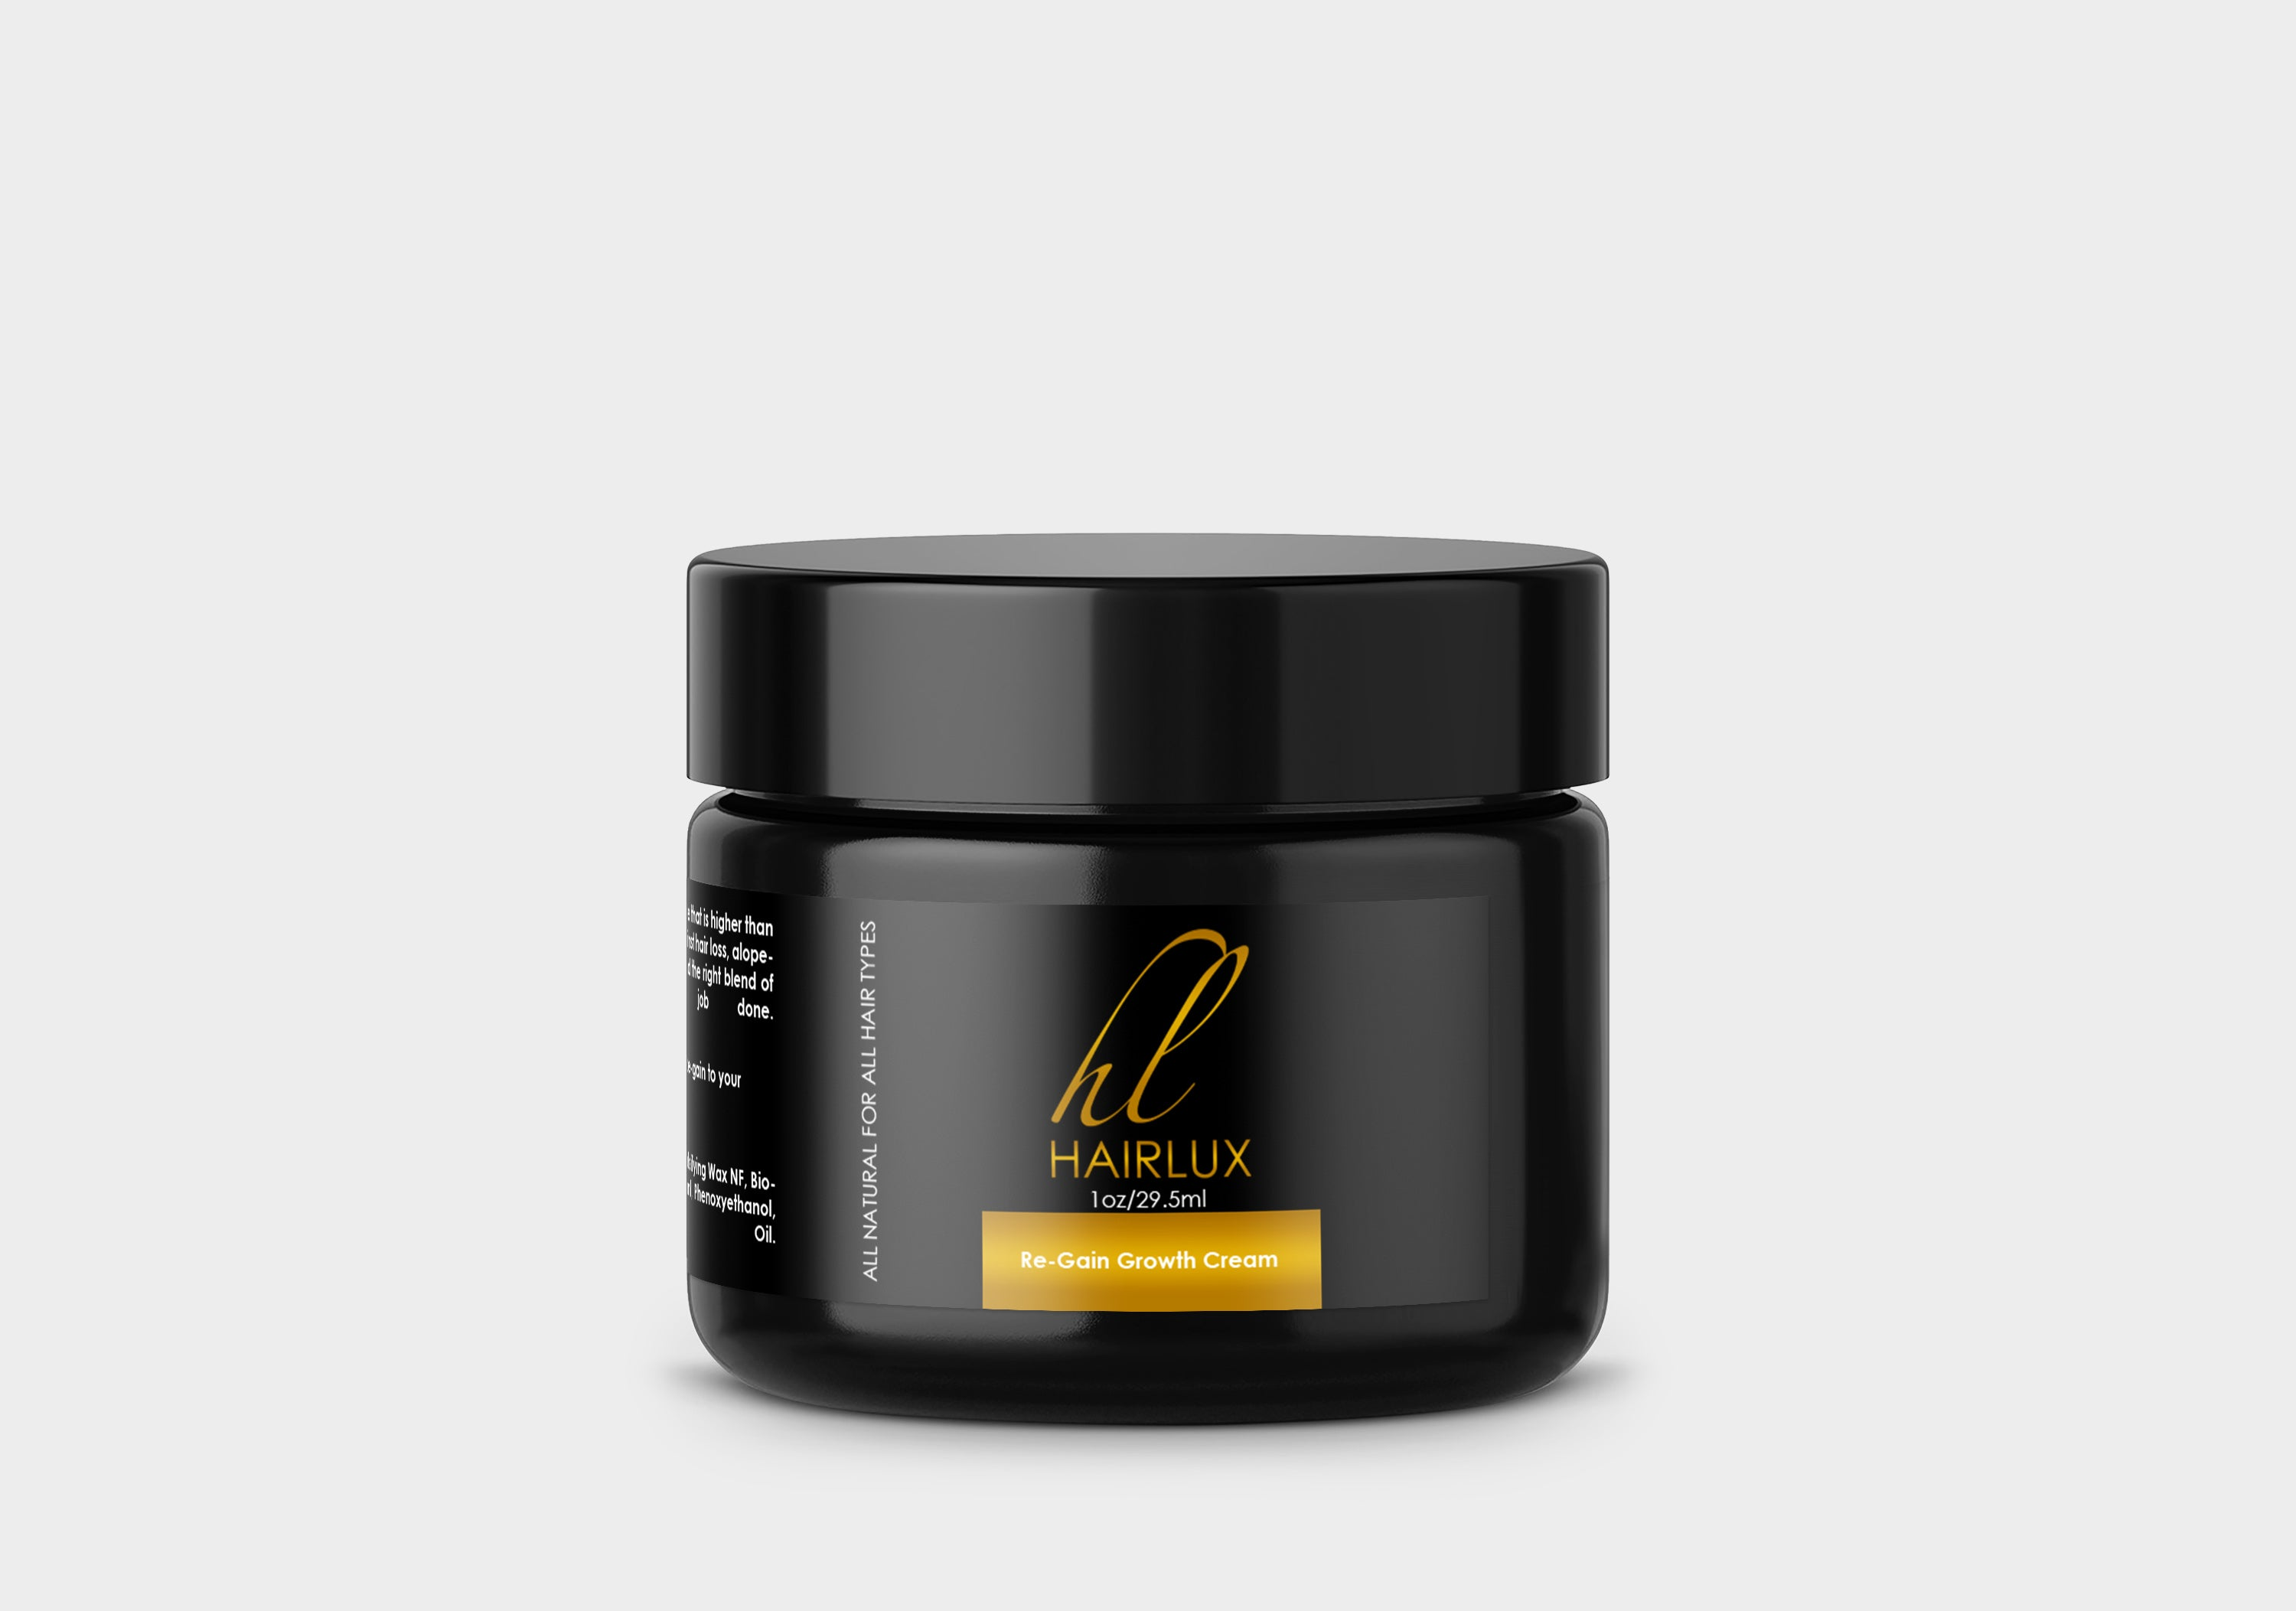 Re-Gain Growth Cream